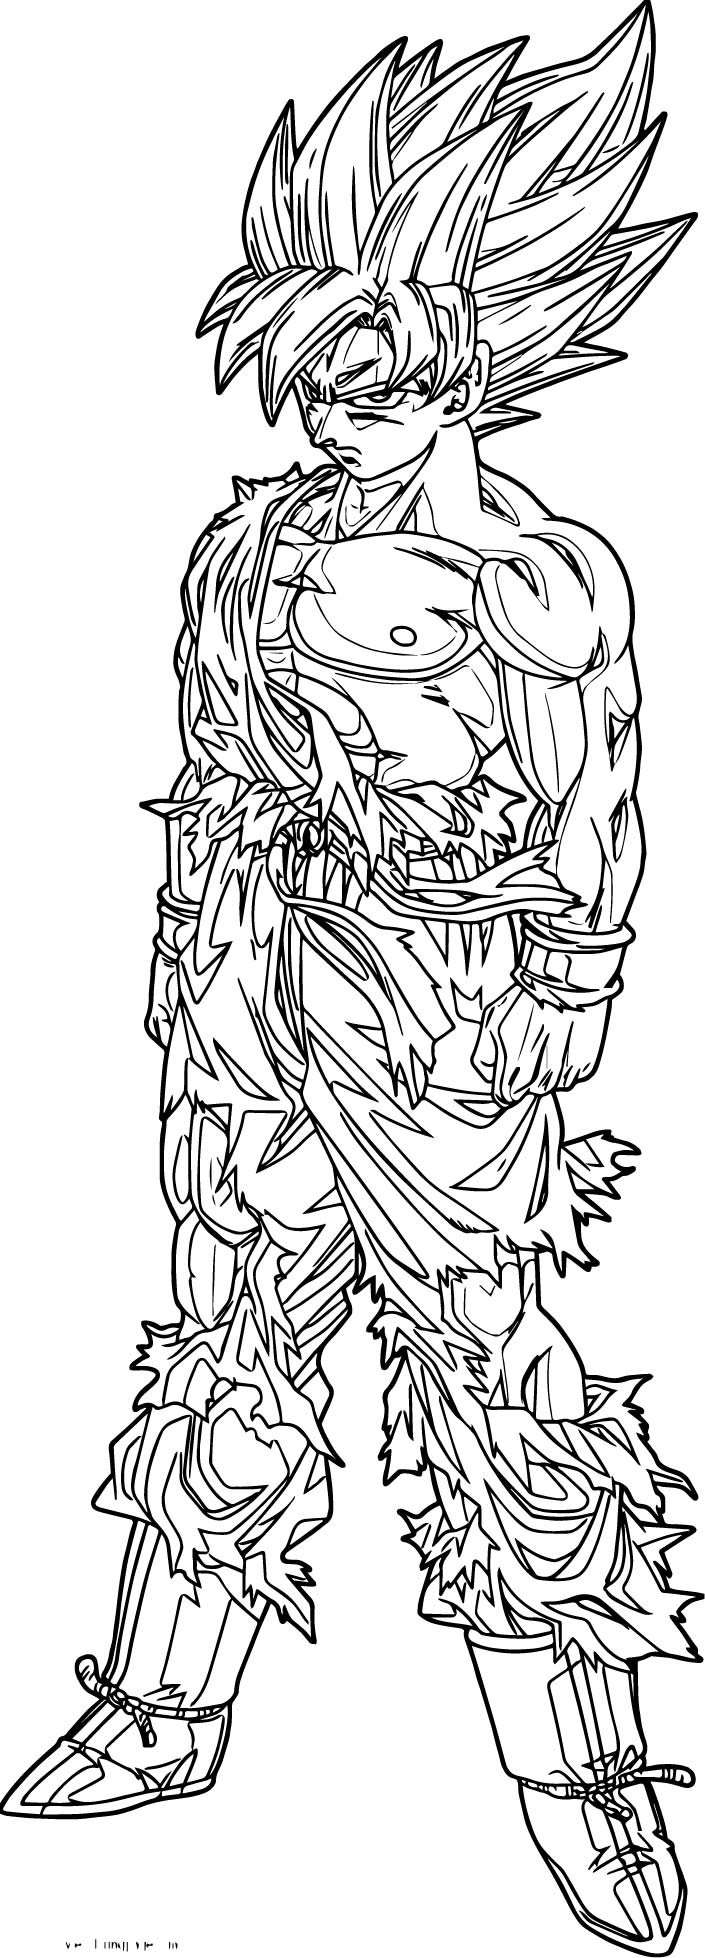 Goku black white coloring page for Goku coloring page